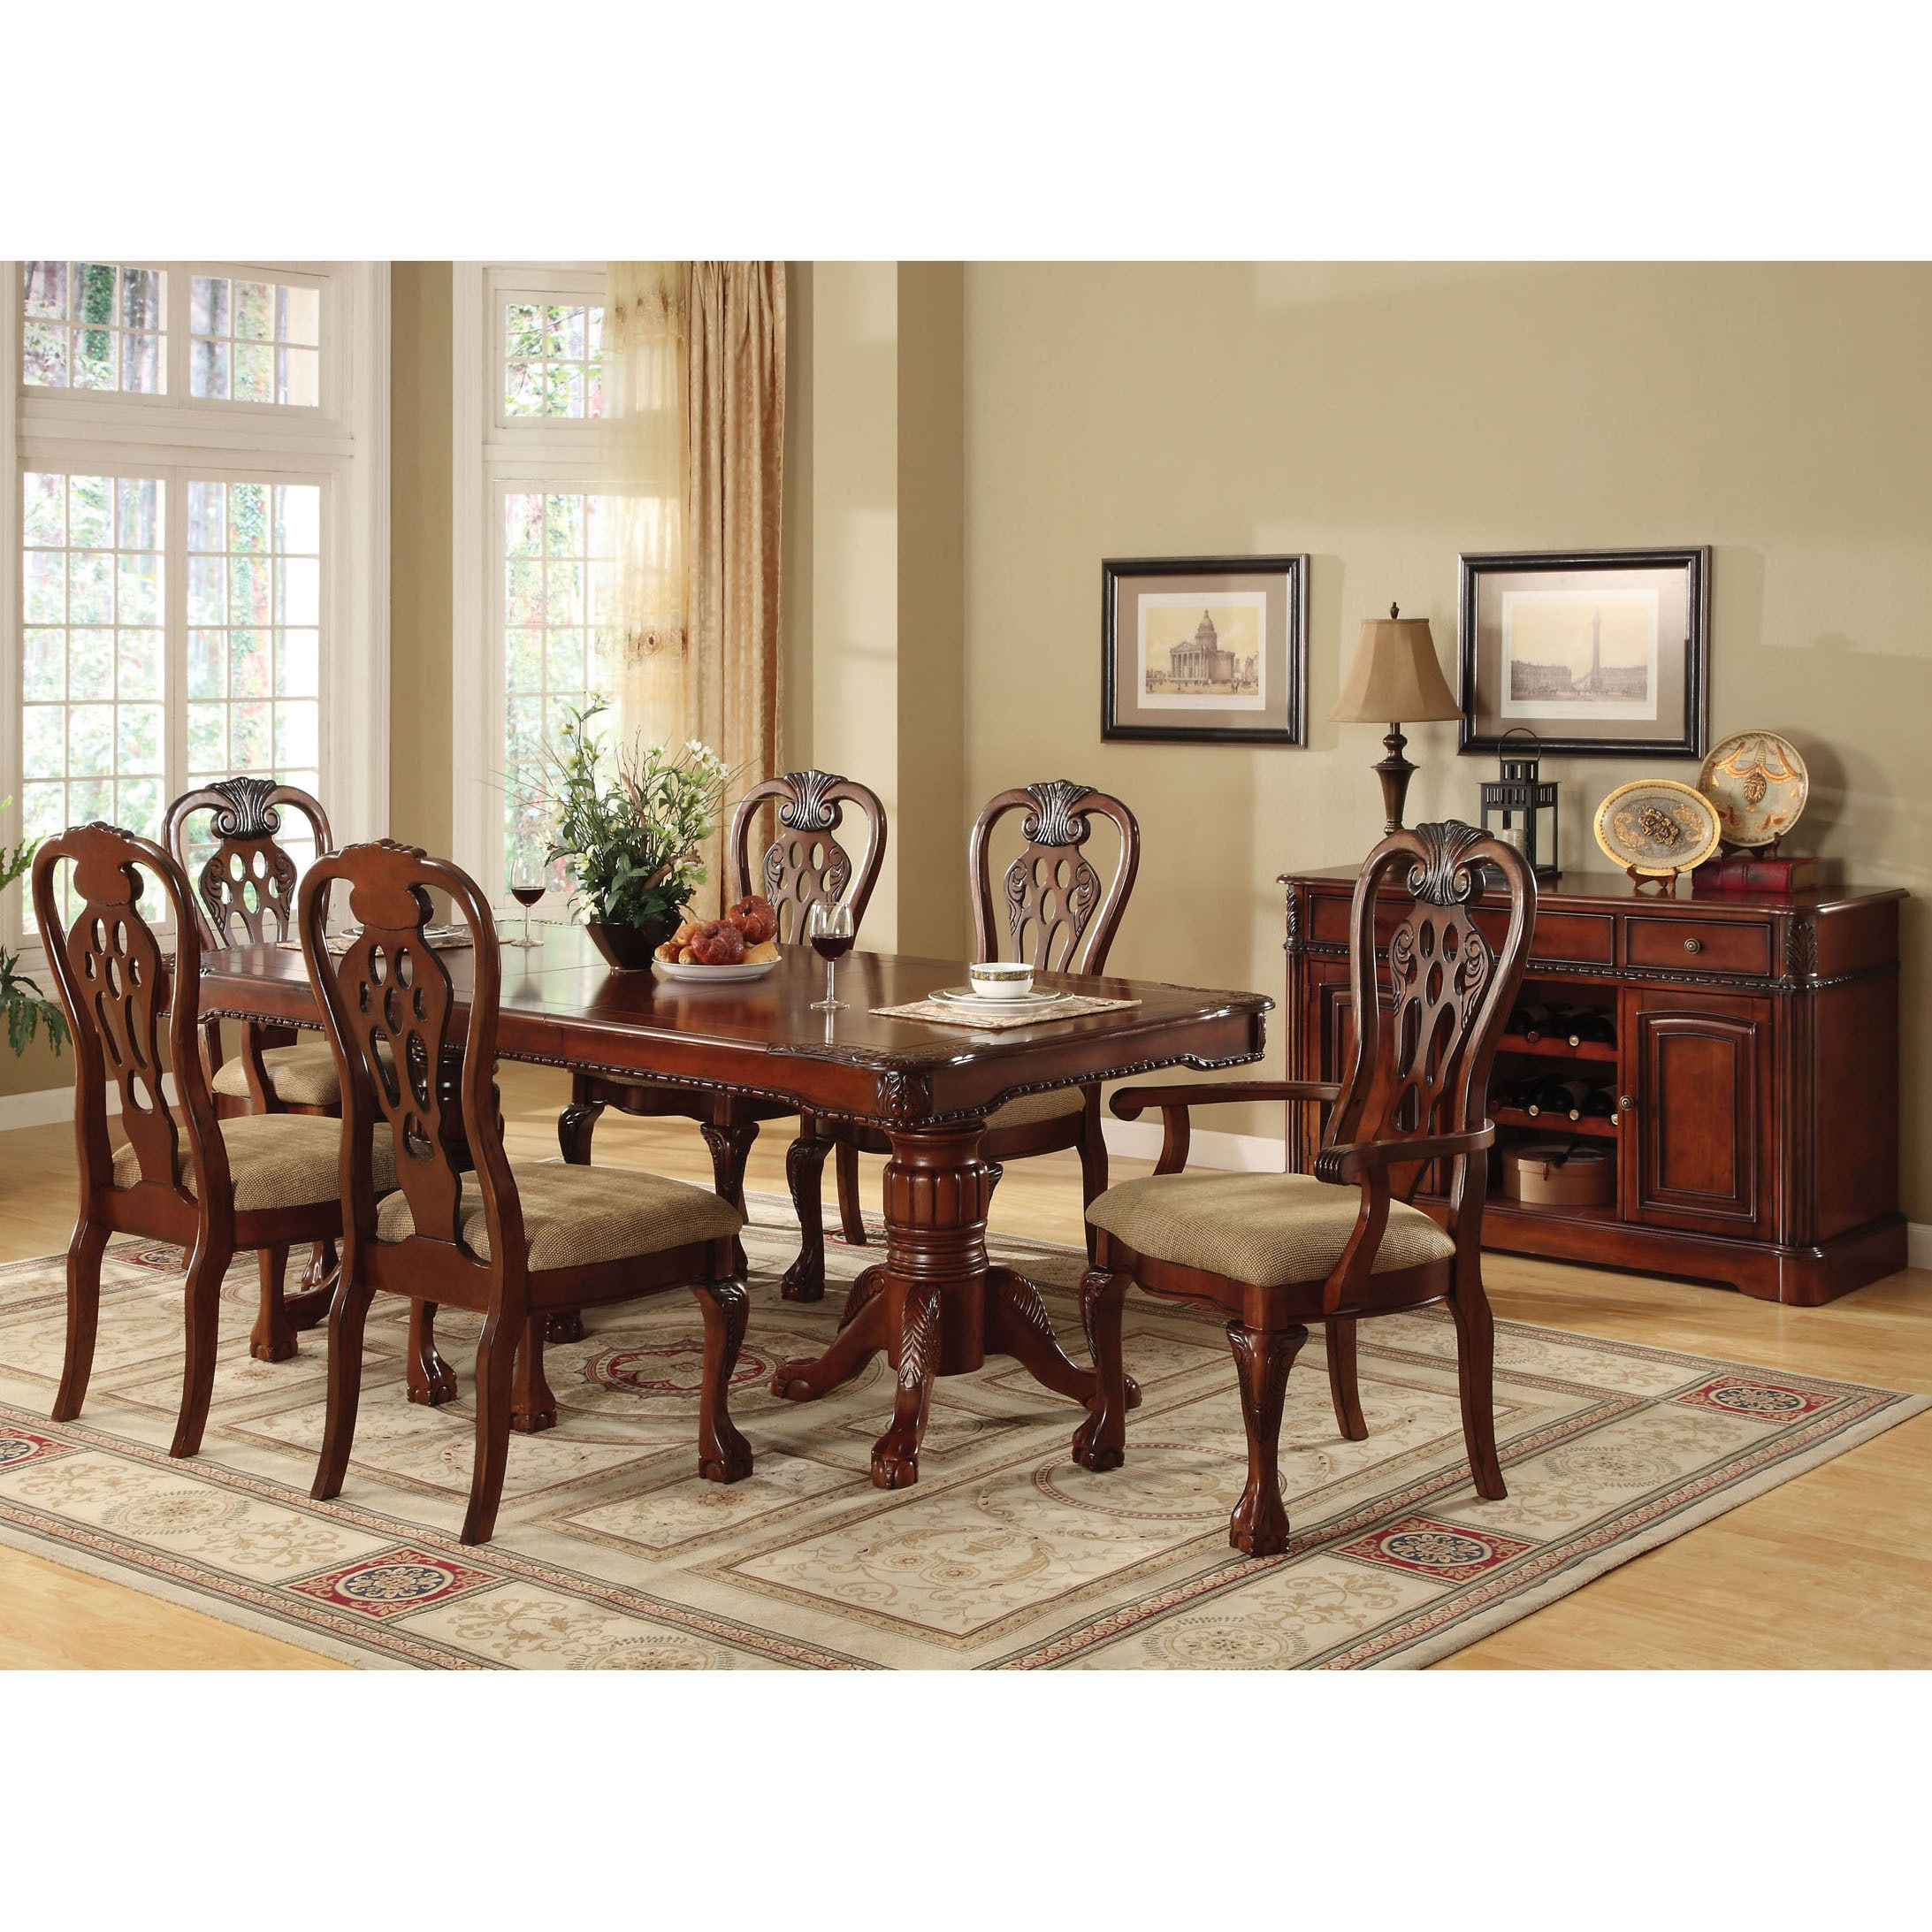 Furniture of America Harper 7-piece Formal Cherry Dining Set - Free ...